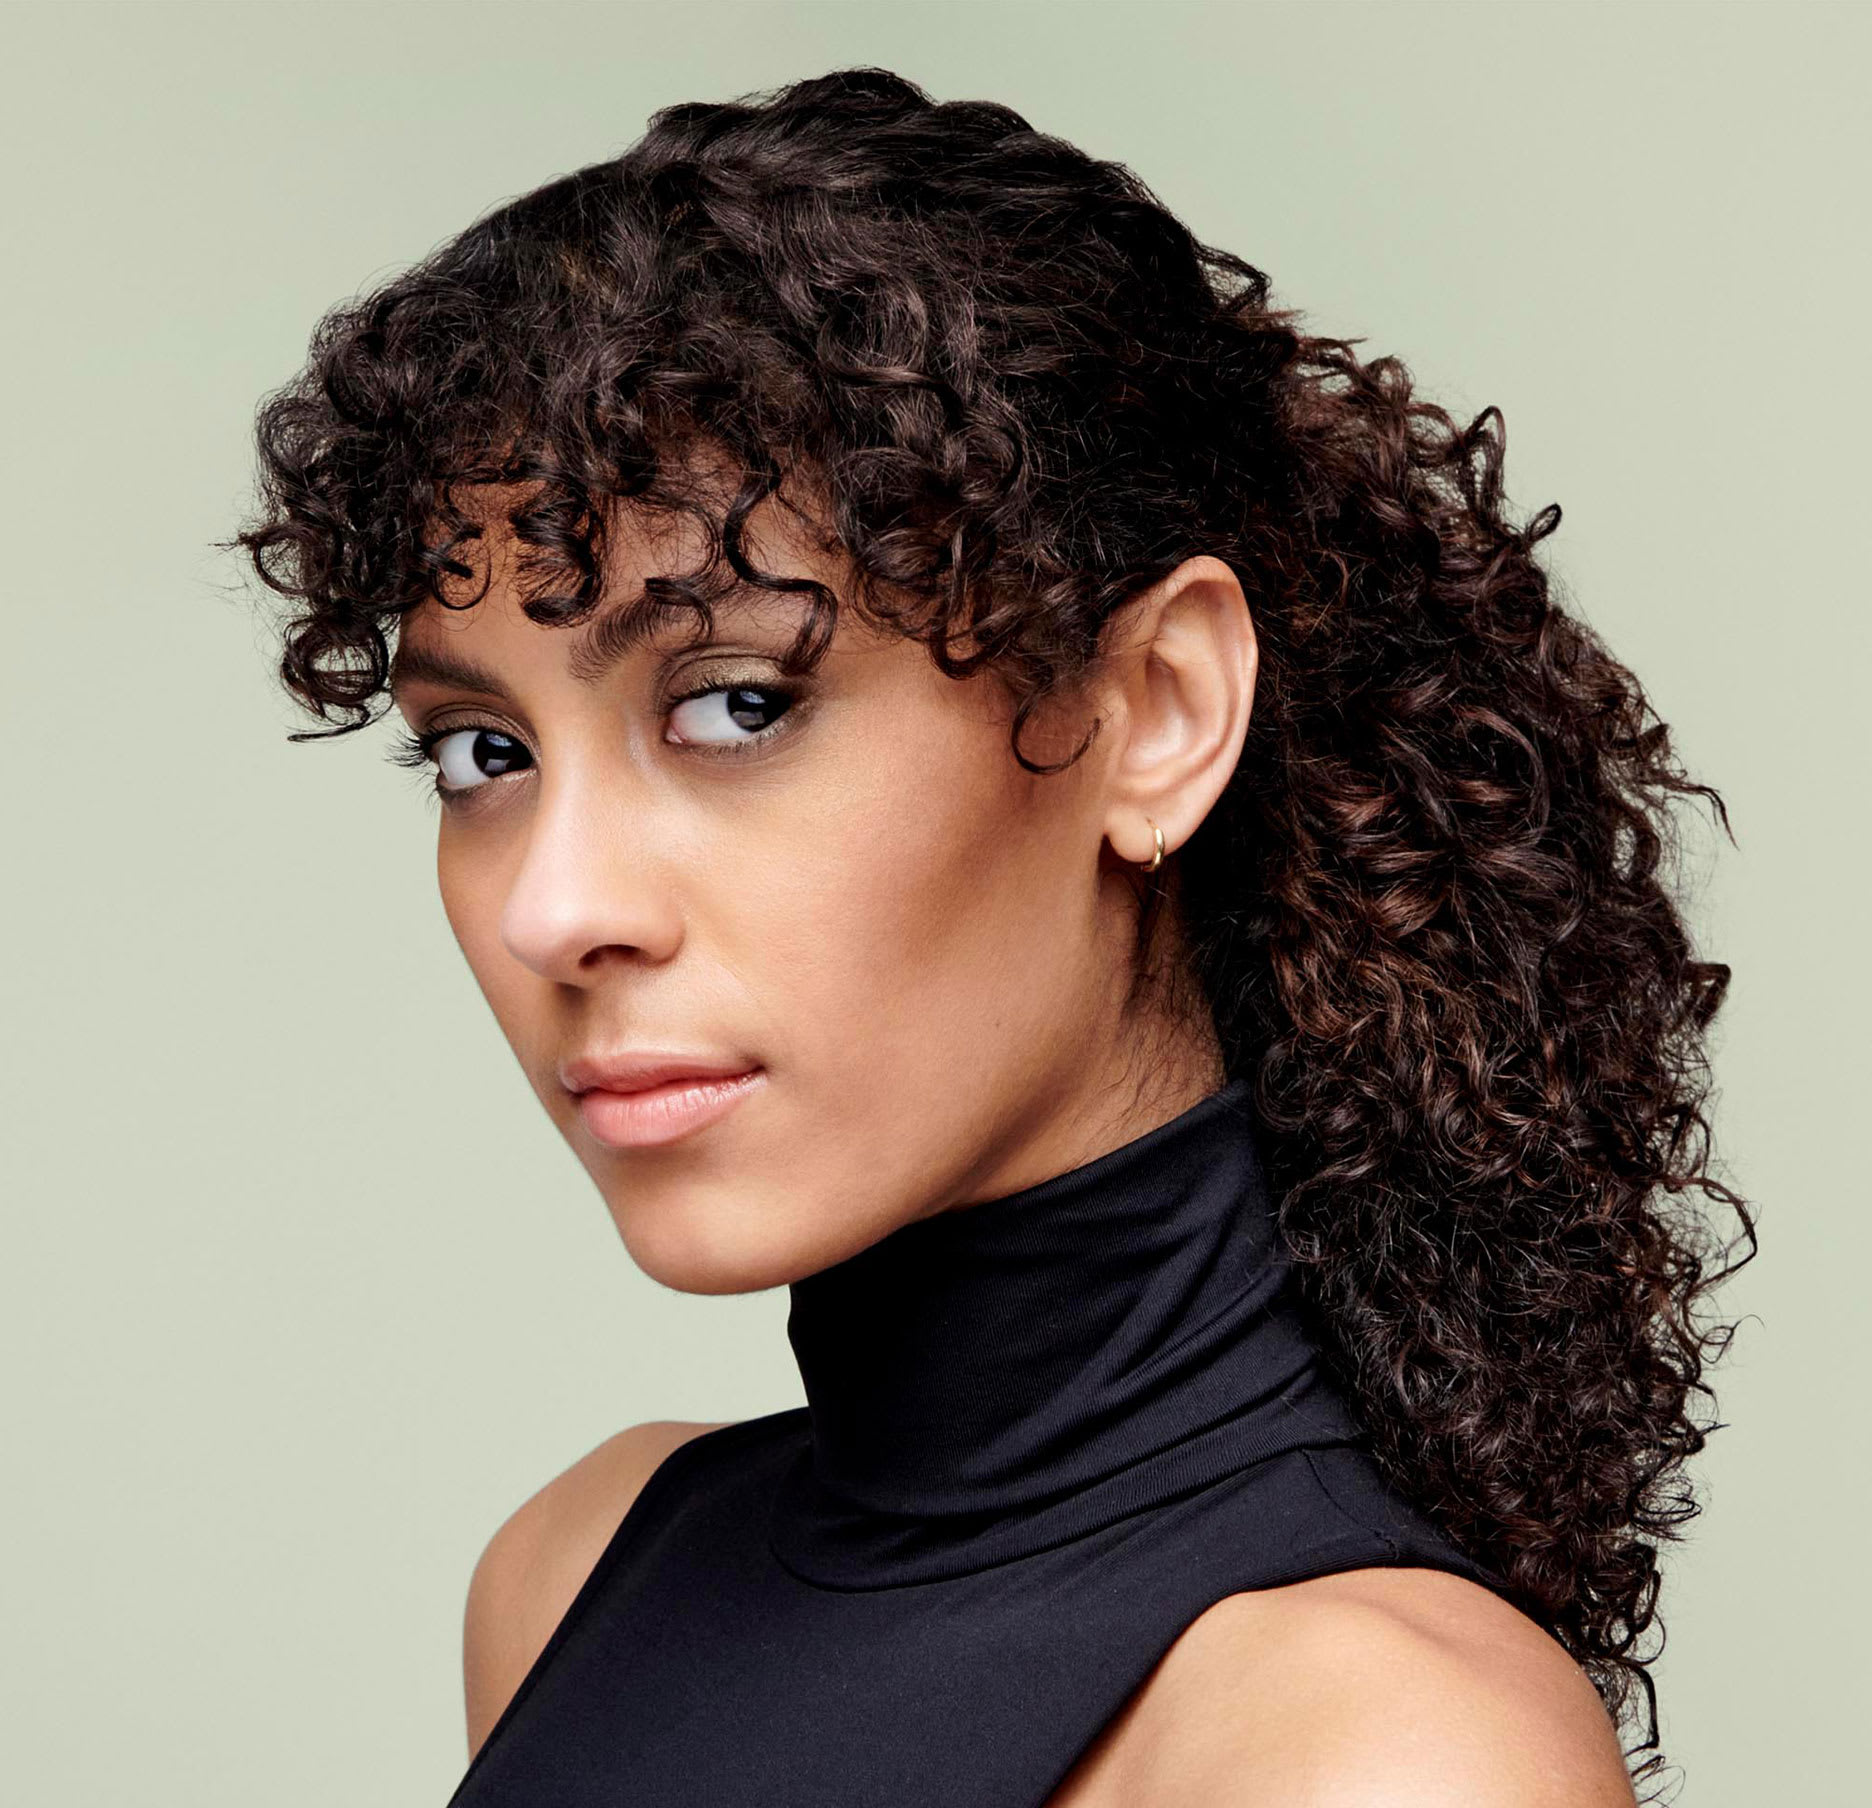 Curly with hair up